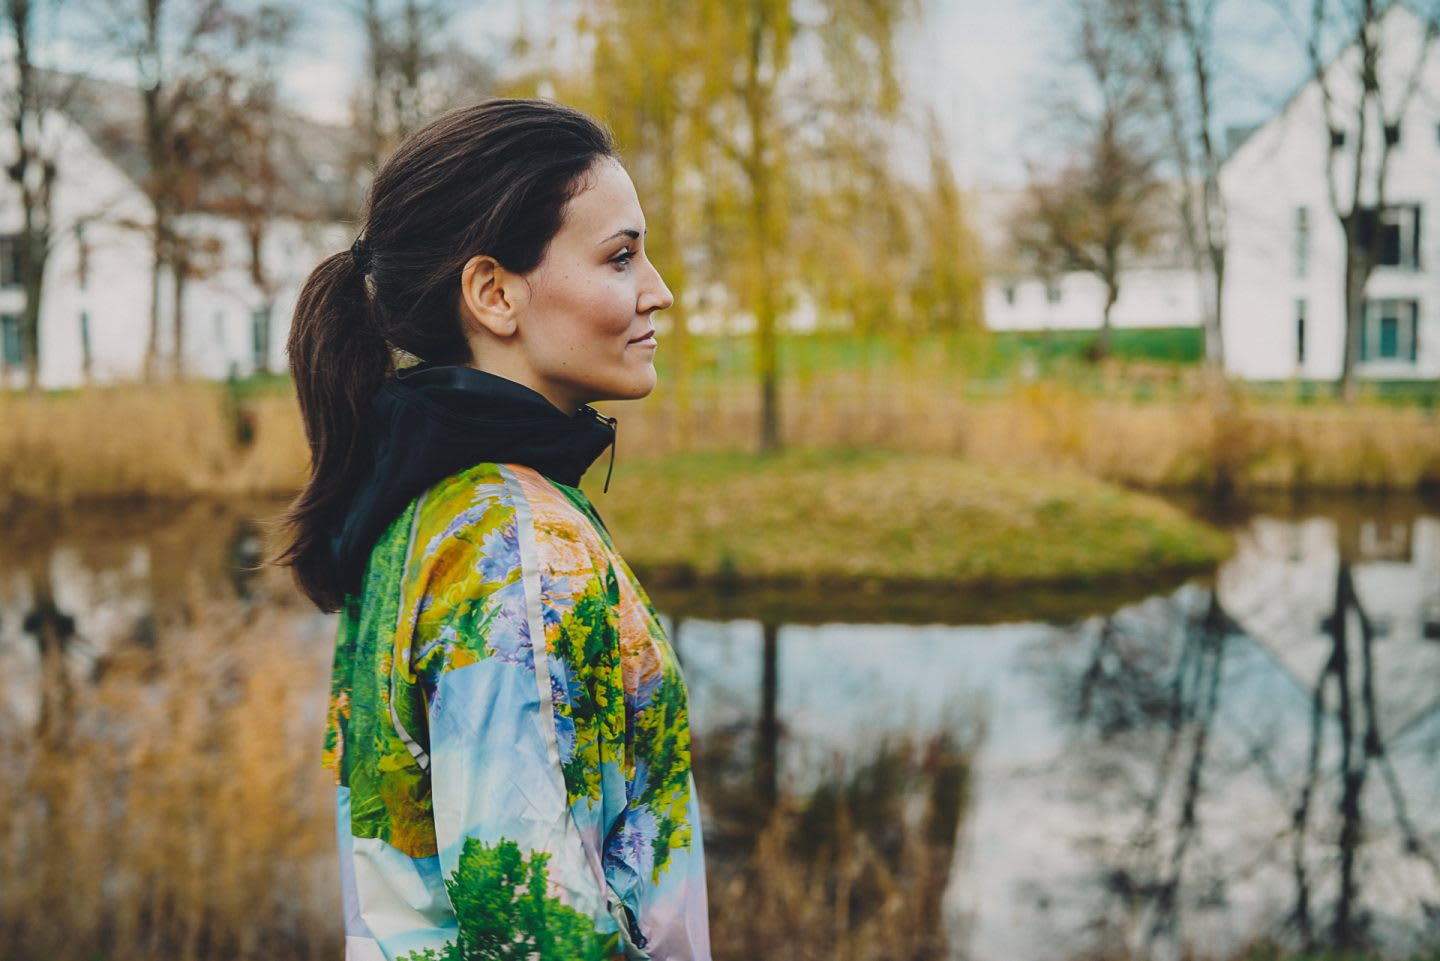 A woman wearing fitness clothing stands by a pond on a cold day. outdoors, environment, calming, peaceful.